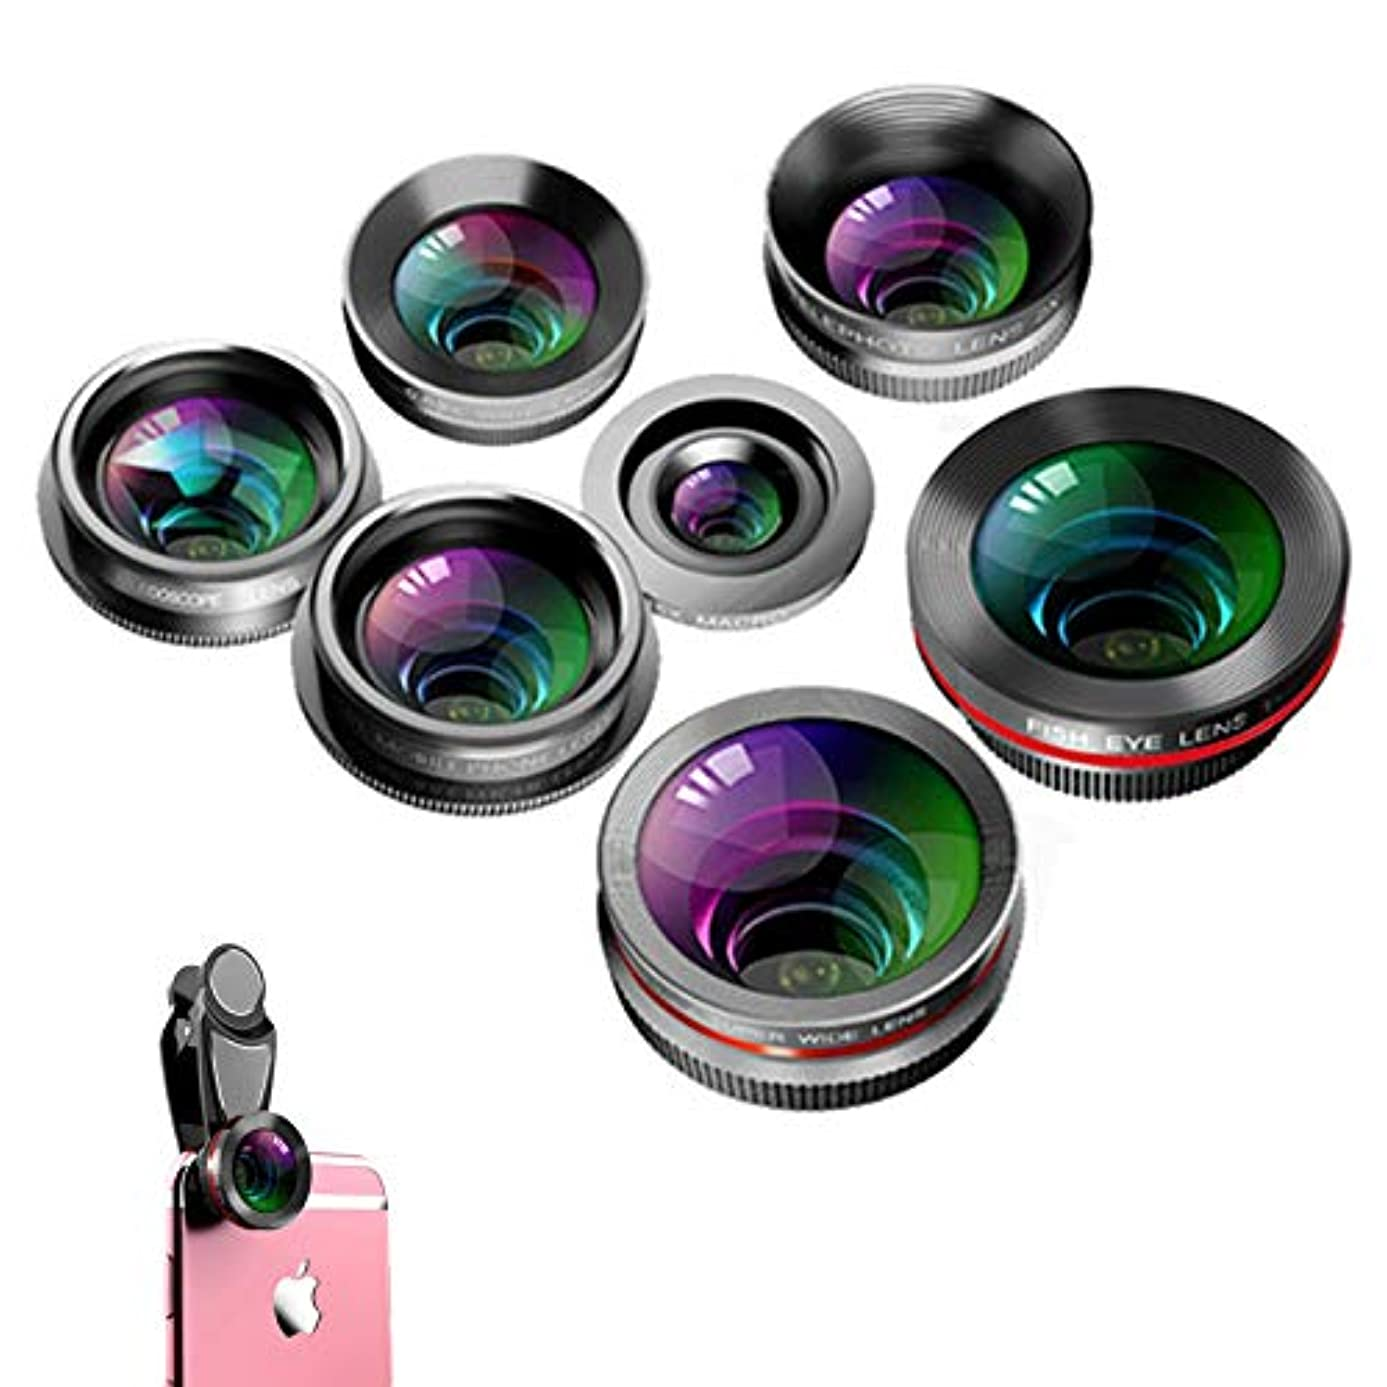 Phone Camera Lens 7 in 1,15X Zoom Telephoto Lens Remote Shutter, 198 Fisheye, Macro and 0.63 0.63 Wide Angle Lens Kaleidoscope CPL Clip for iPhone Samsung Ipad